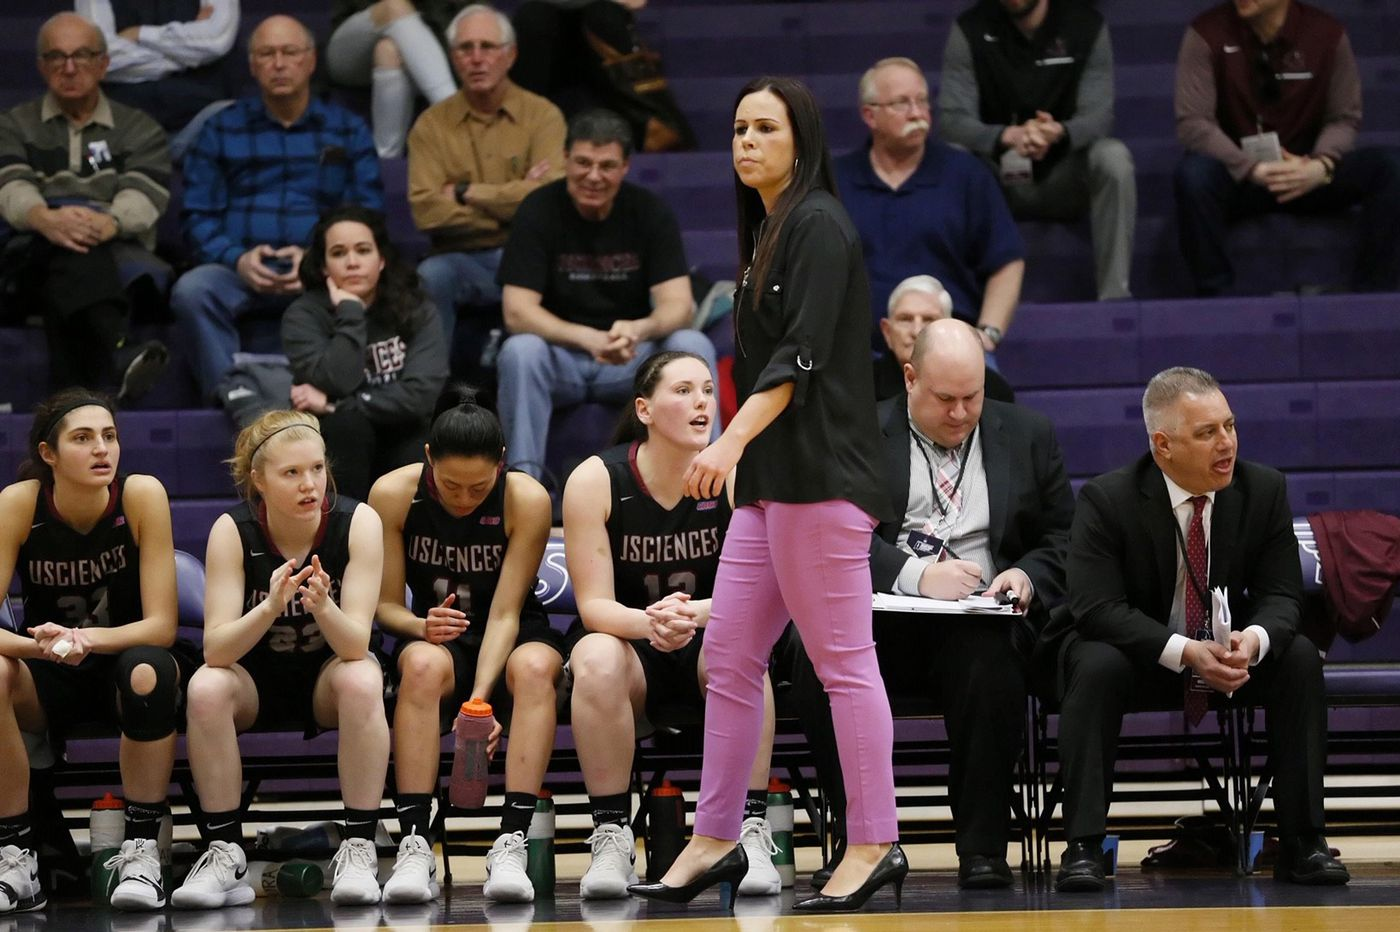 Rise of University of Sciences women's hoops has made for great rivalry with Jefferson University | Mike Jensen